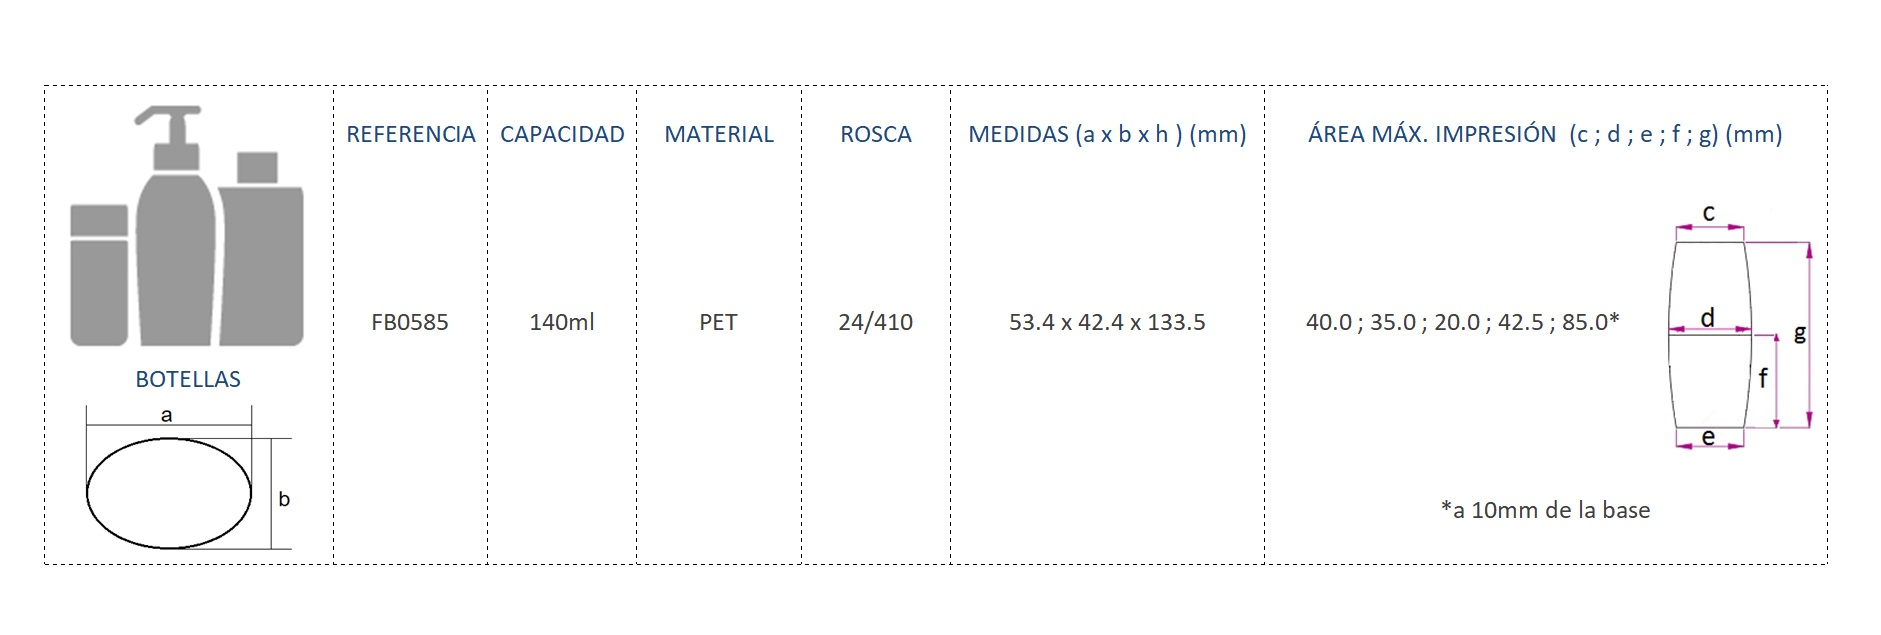 Cuadro de materiales botella FB0585